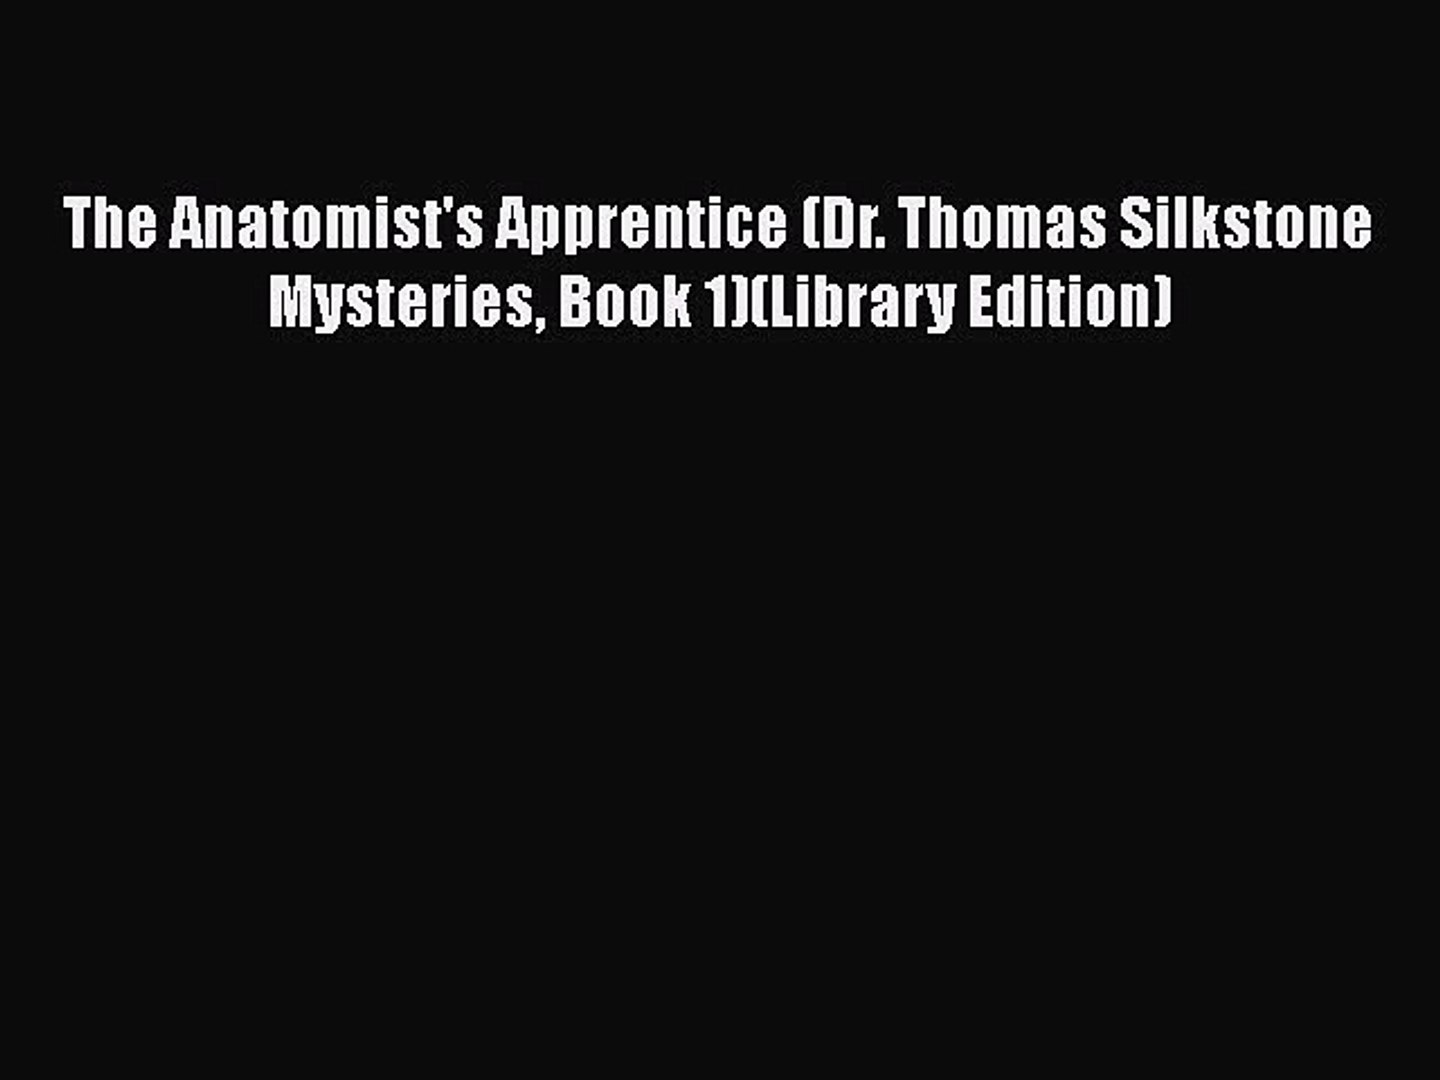 The Anatomists Apprentice (Dr. Thomas Silkstone Mystery Series, Book 1)